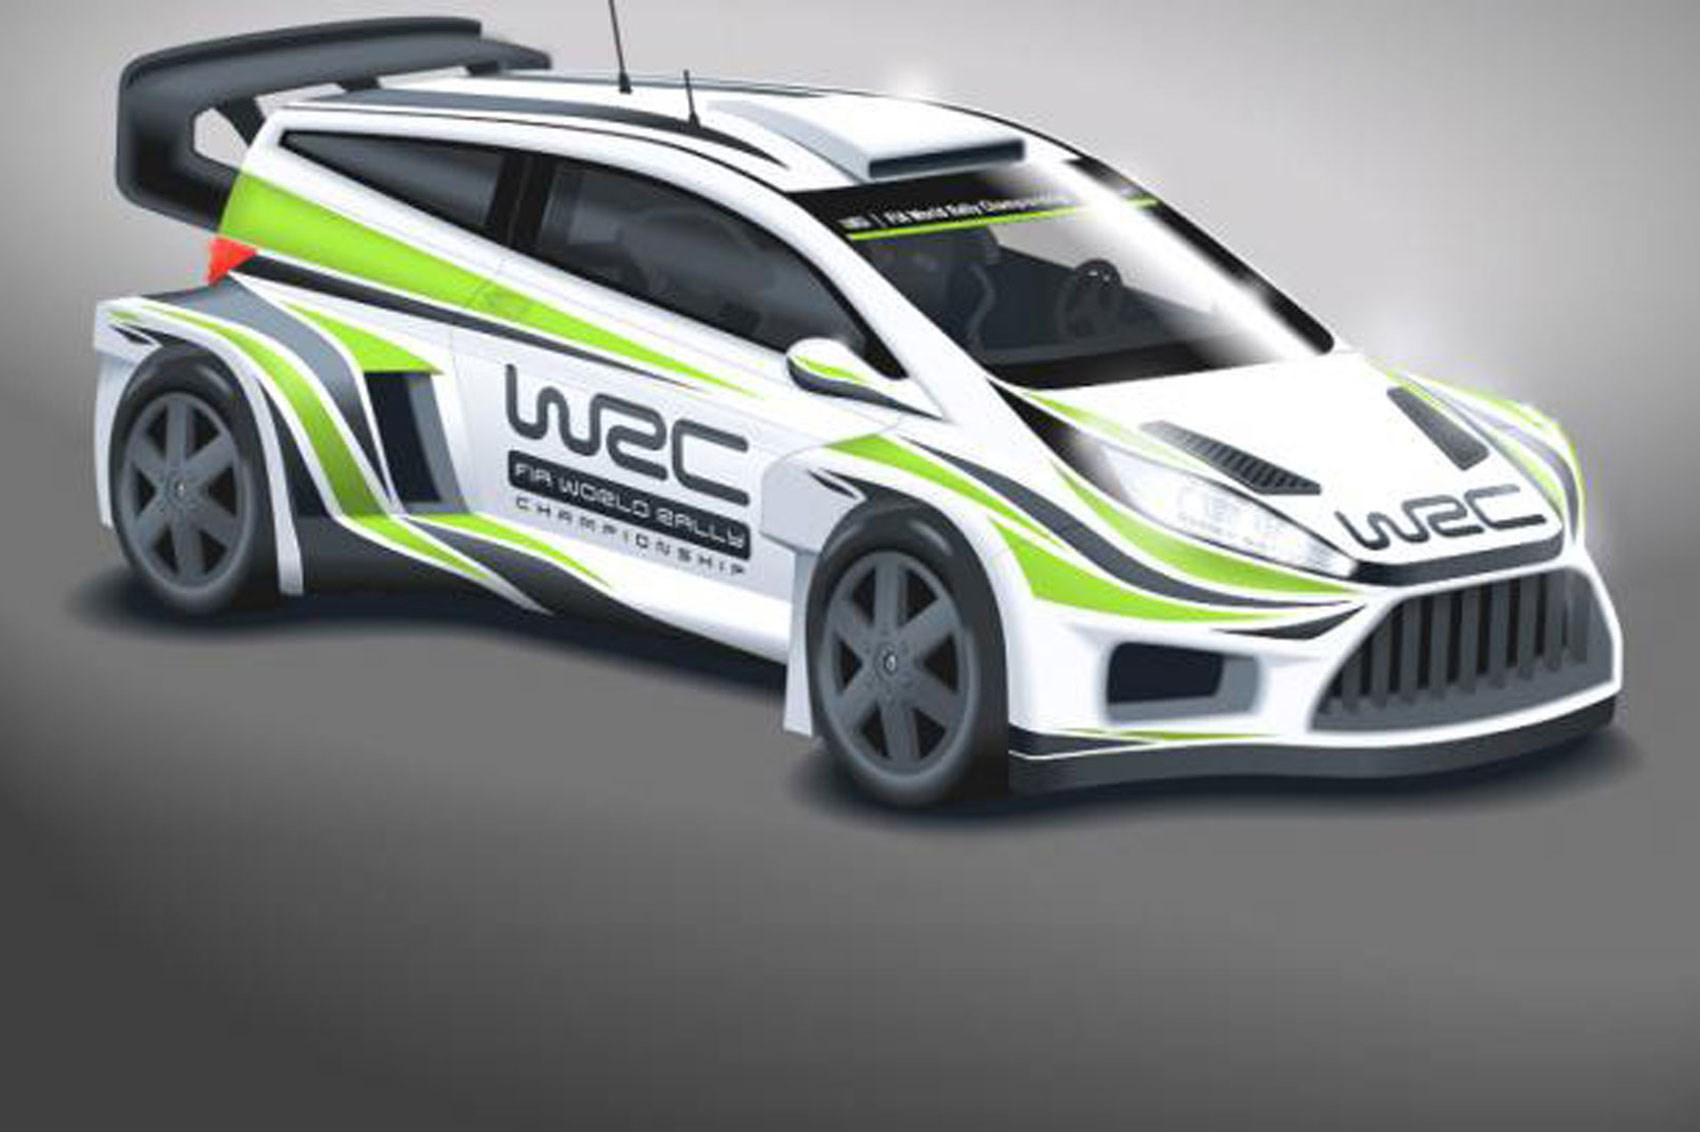 Ultrablogus  Gorgeous Wild New Look For Wrc Cars In  By Car Magazine With Great Wrc Cars Will Get Wider Bodies Bigger Wings And More Power For  With Cute Best Car Interior Carpet Cleaner Also Citroen C Interior In Addition Interior Dimensions Of Dodge Caravan And Best Interior Cleaner As Well As  Dodge Challenger Sxt Interior Additionally Best Vehicle Interior From Carmagazinecouk With Ultrablogus  Great Wild New Look For Wrc Cars In  By Car Magazine With Cute Wrc Cars Will Get Wider Bodies Bigger Wings And More Power For  And Gorgeous Best Car Interior Carpet Cleaner Also Citroen C Interior In Addition Interior Dimensions Of Dodge Caravan From Carmagazinecouk